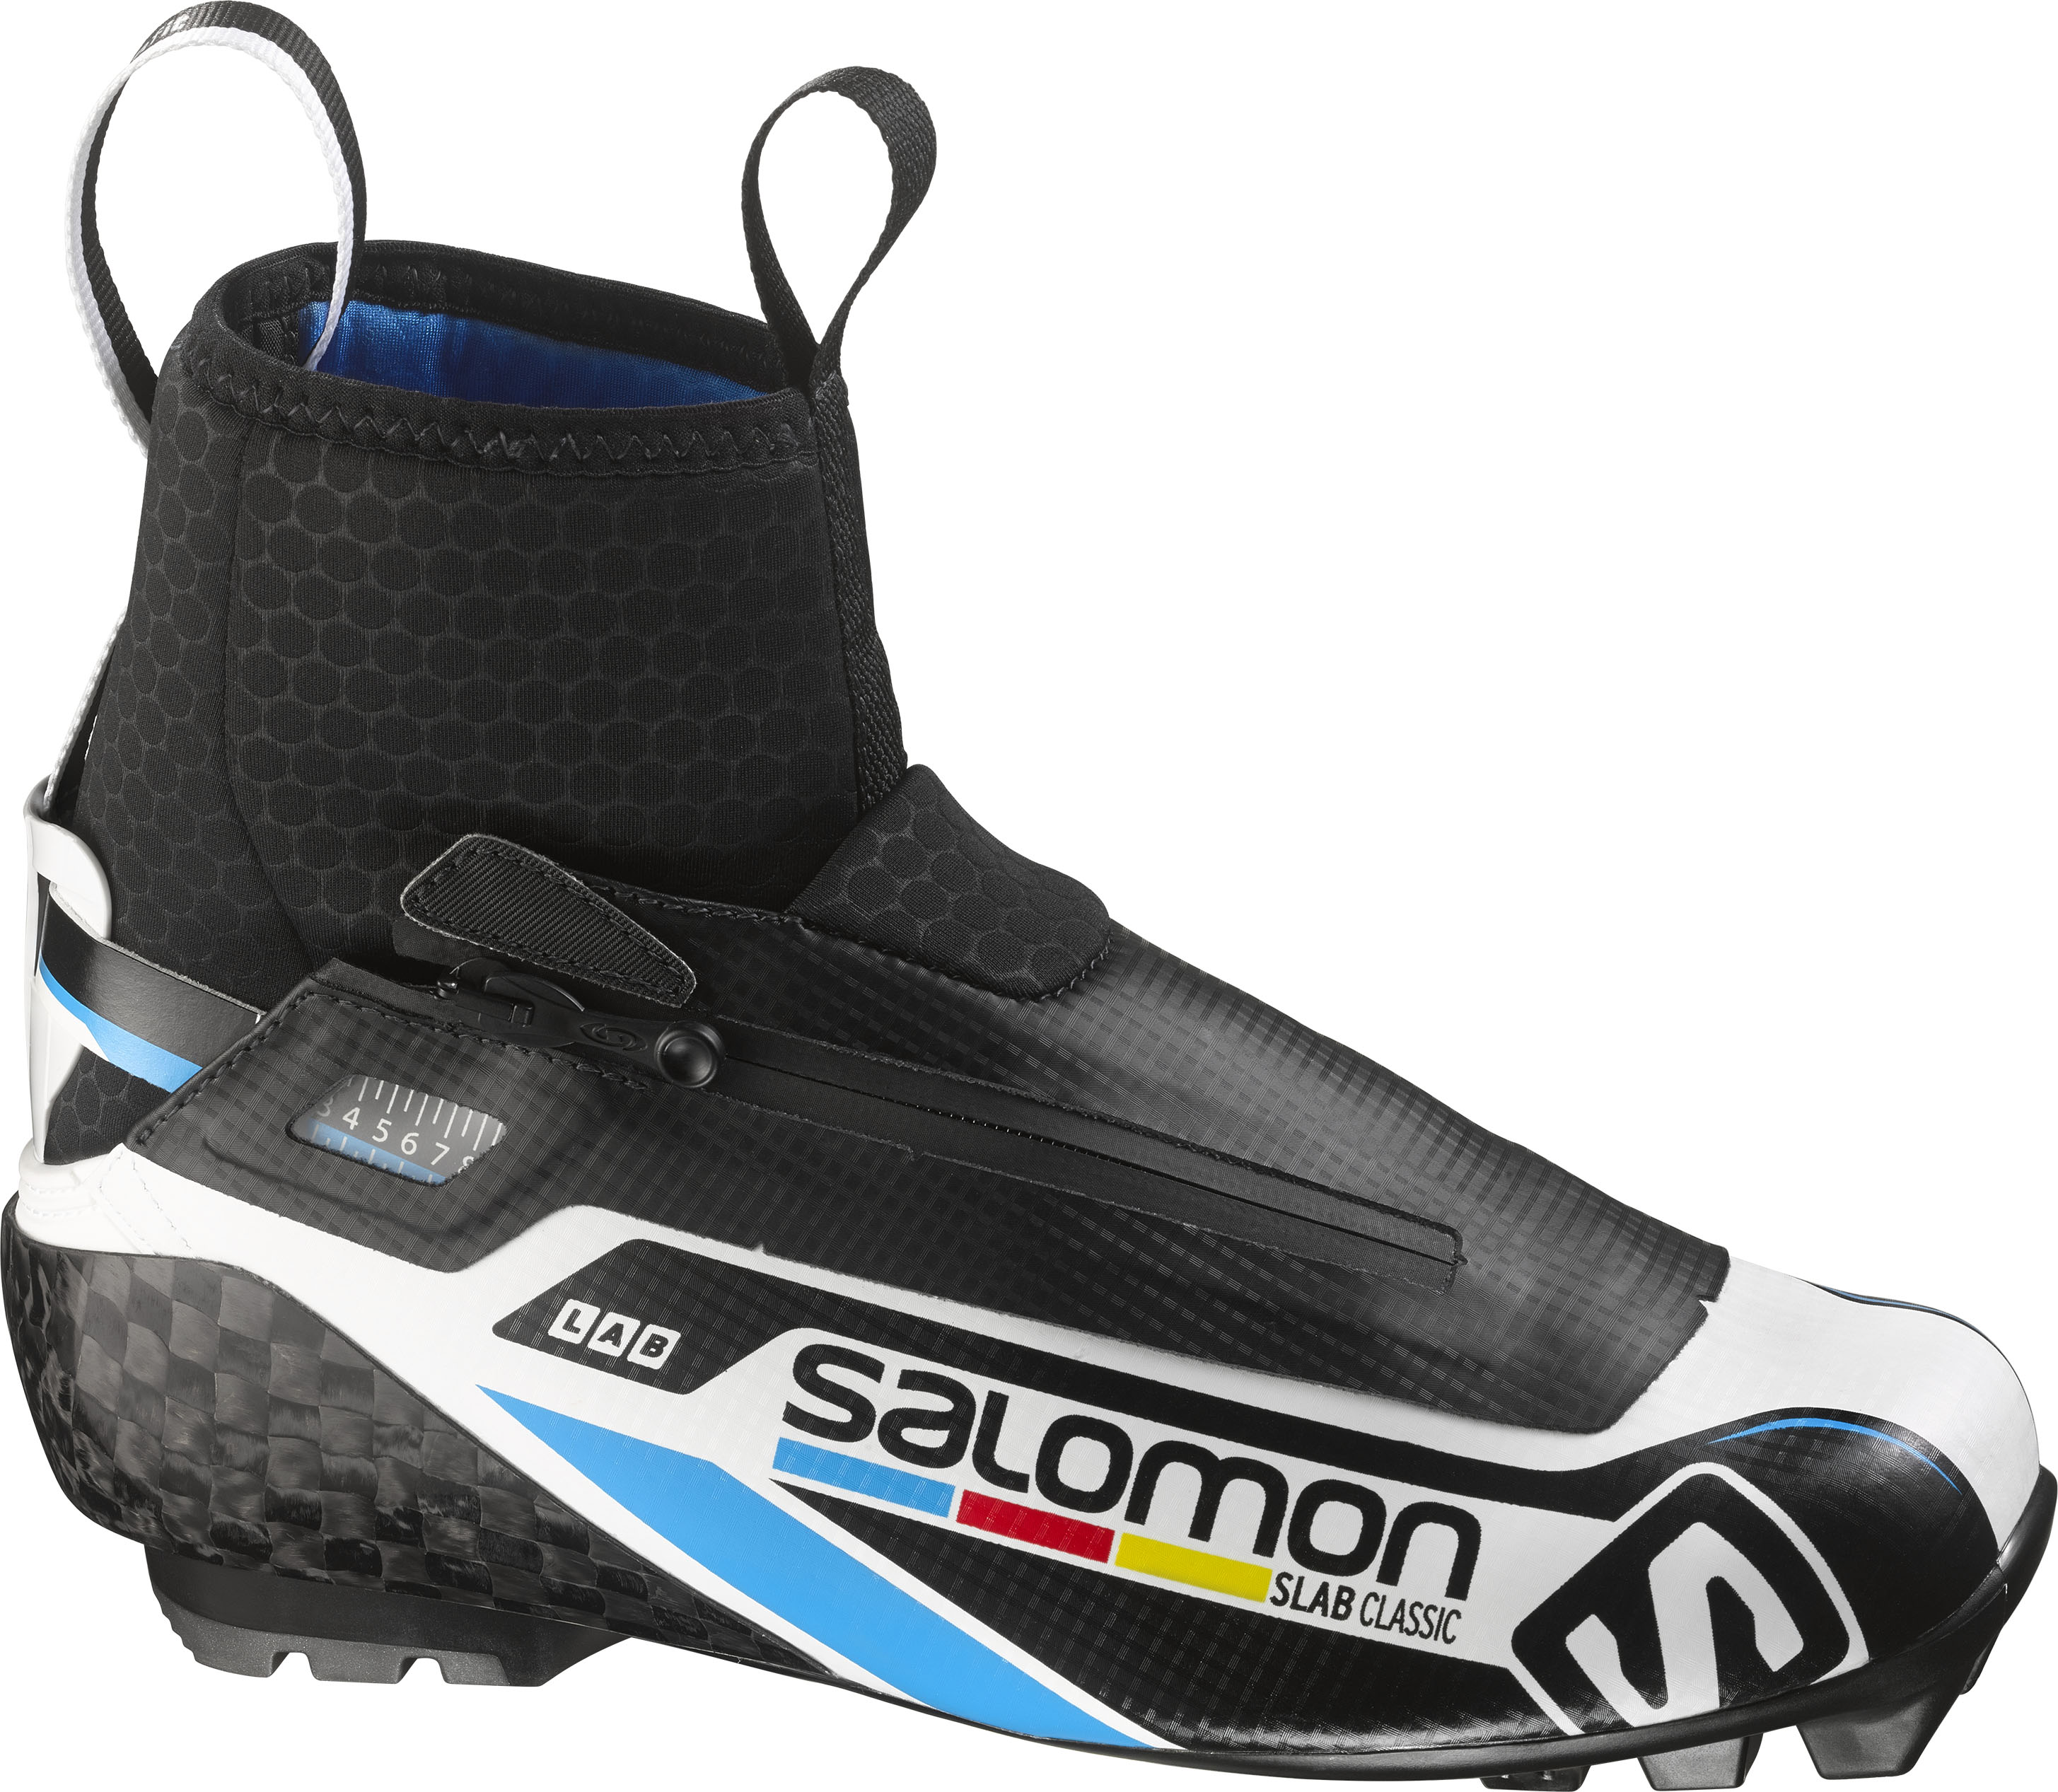 SALOMON S-LAB CLASSIC Black/White 16/17